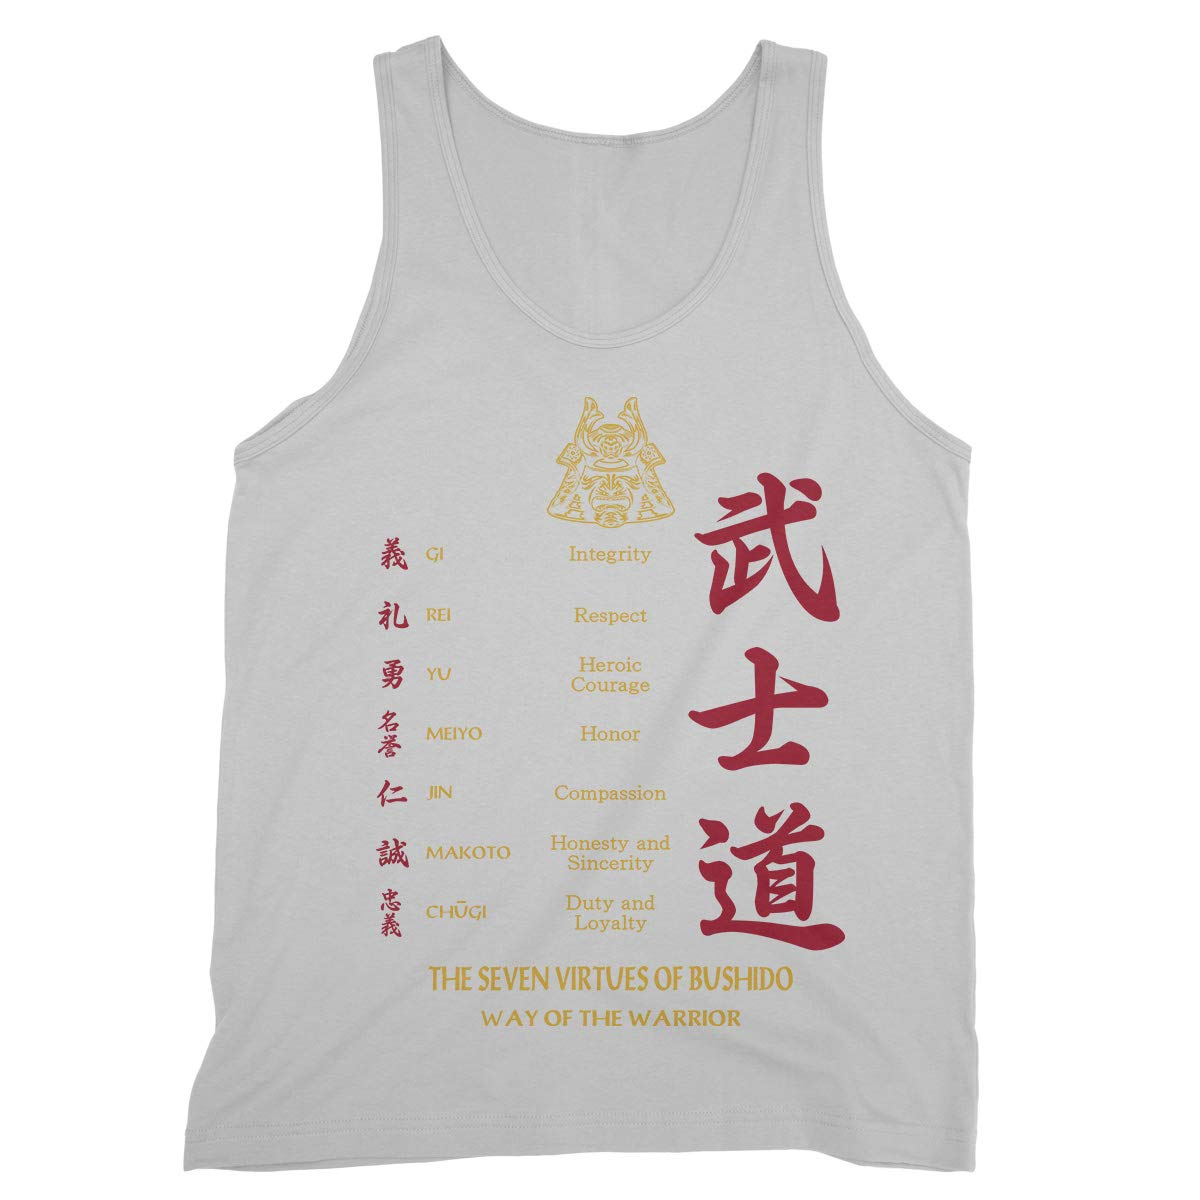 Royal Decor Collection Interrity Respect Heroic Courage Honor Honesty and Sincerity Duty and Loyalty Tank Tops